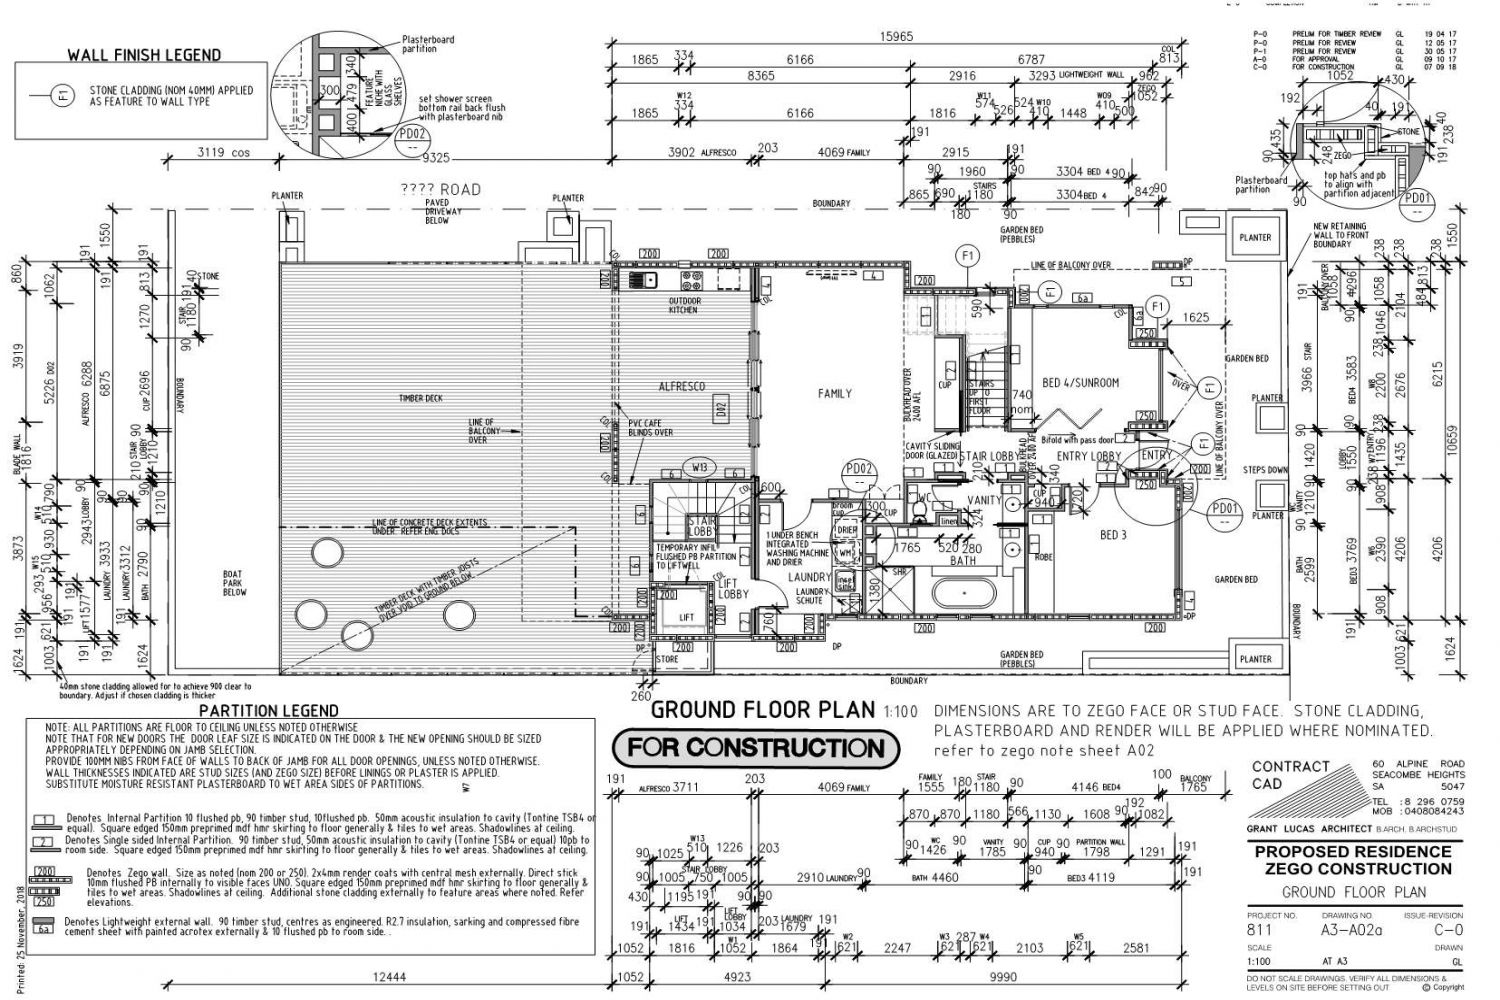 Owner Builder Zego Construction  2 storey Home at Port Noarlunga: Working Drawings Sheet 6 Ground floor plan